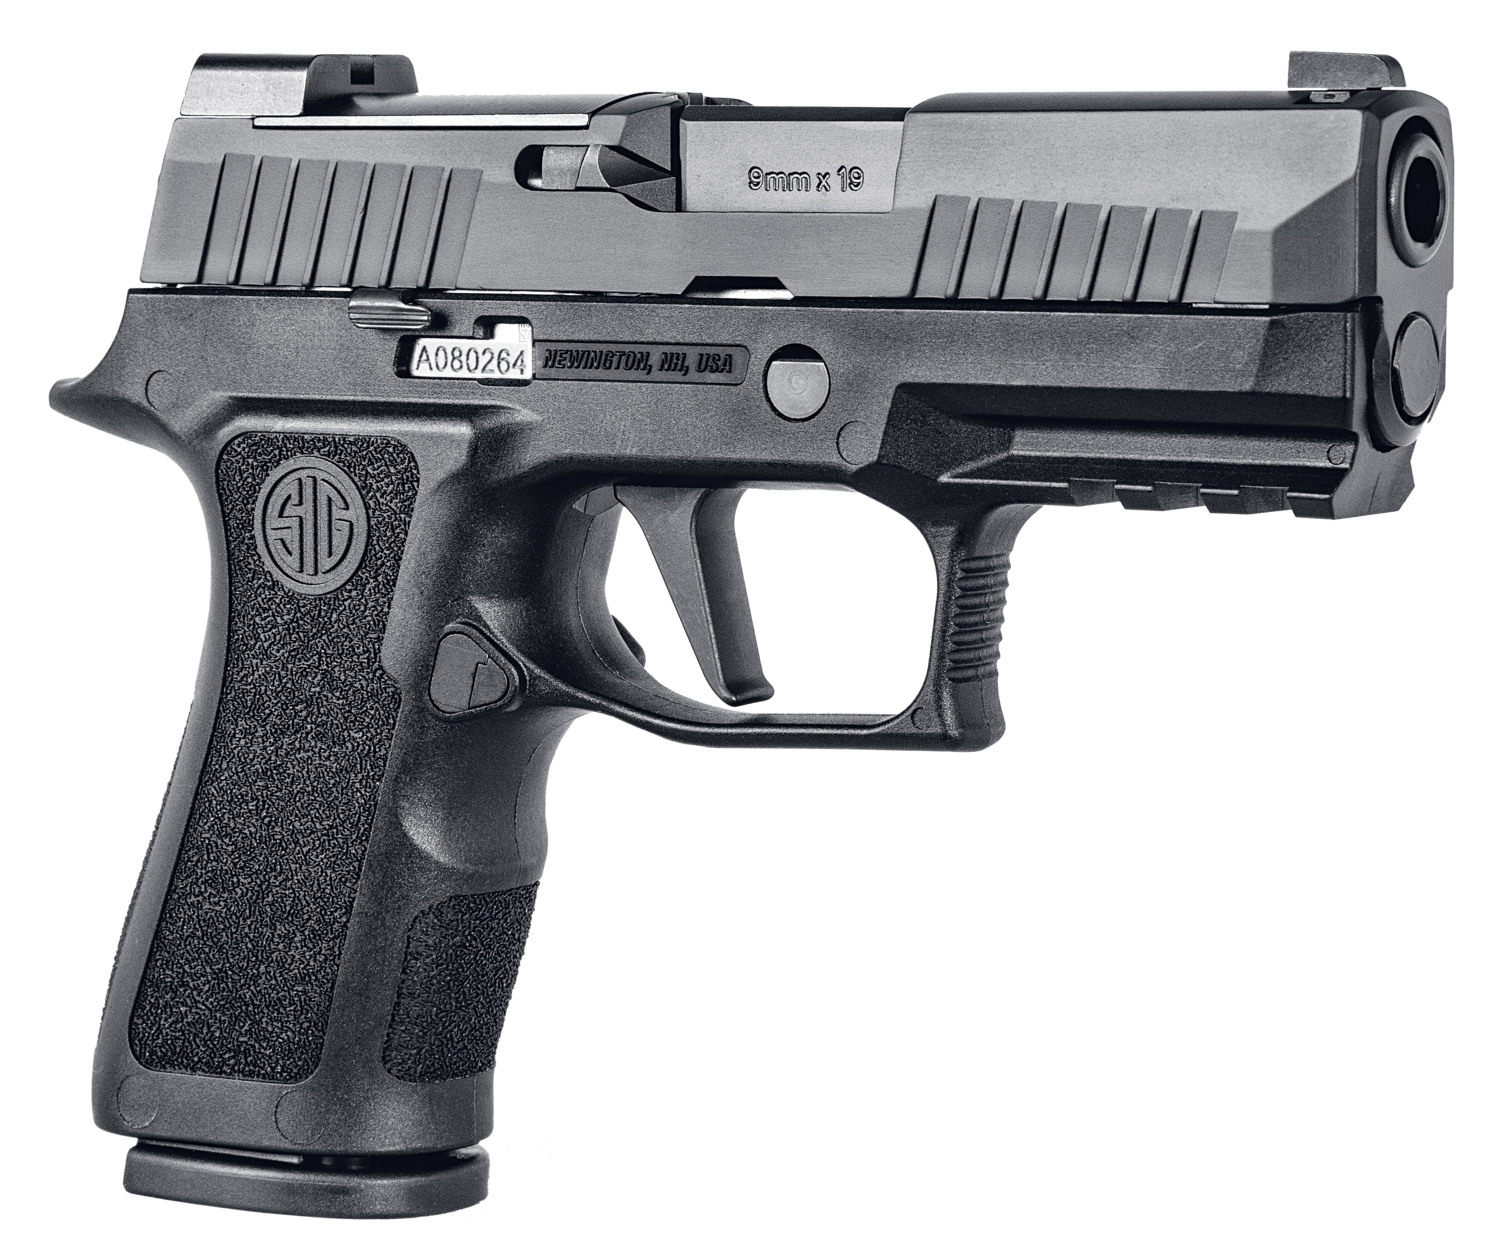 """Sig Sauer - P320 Compact 9mm Luger Double 3.6"""" 10+1 - X-Ray3  Polymer Grip - Stainless Steel Frame - Nitron Stainless Steel Slide - Black"""